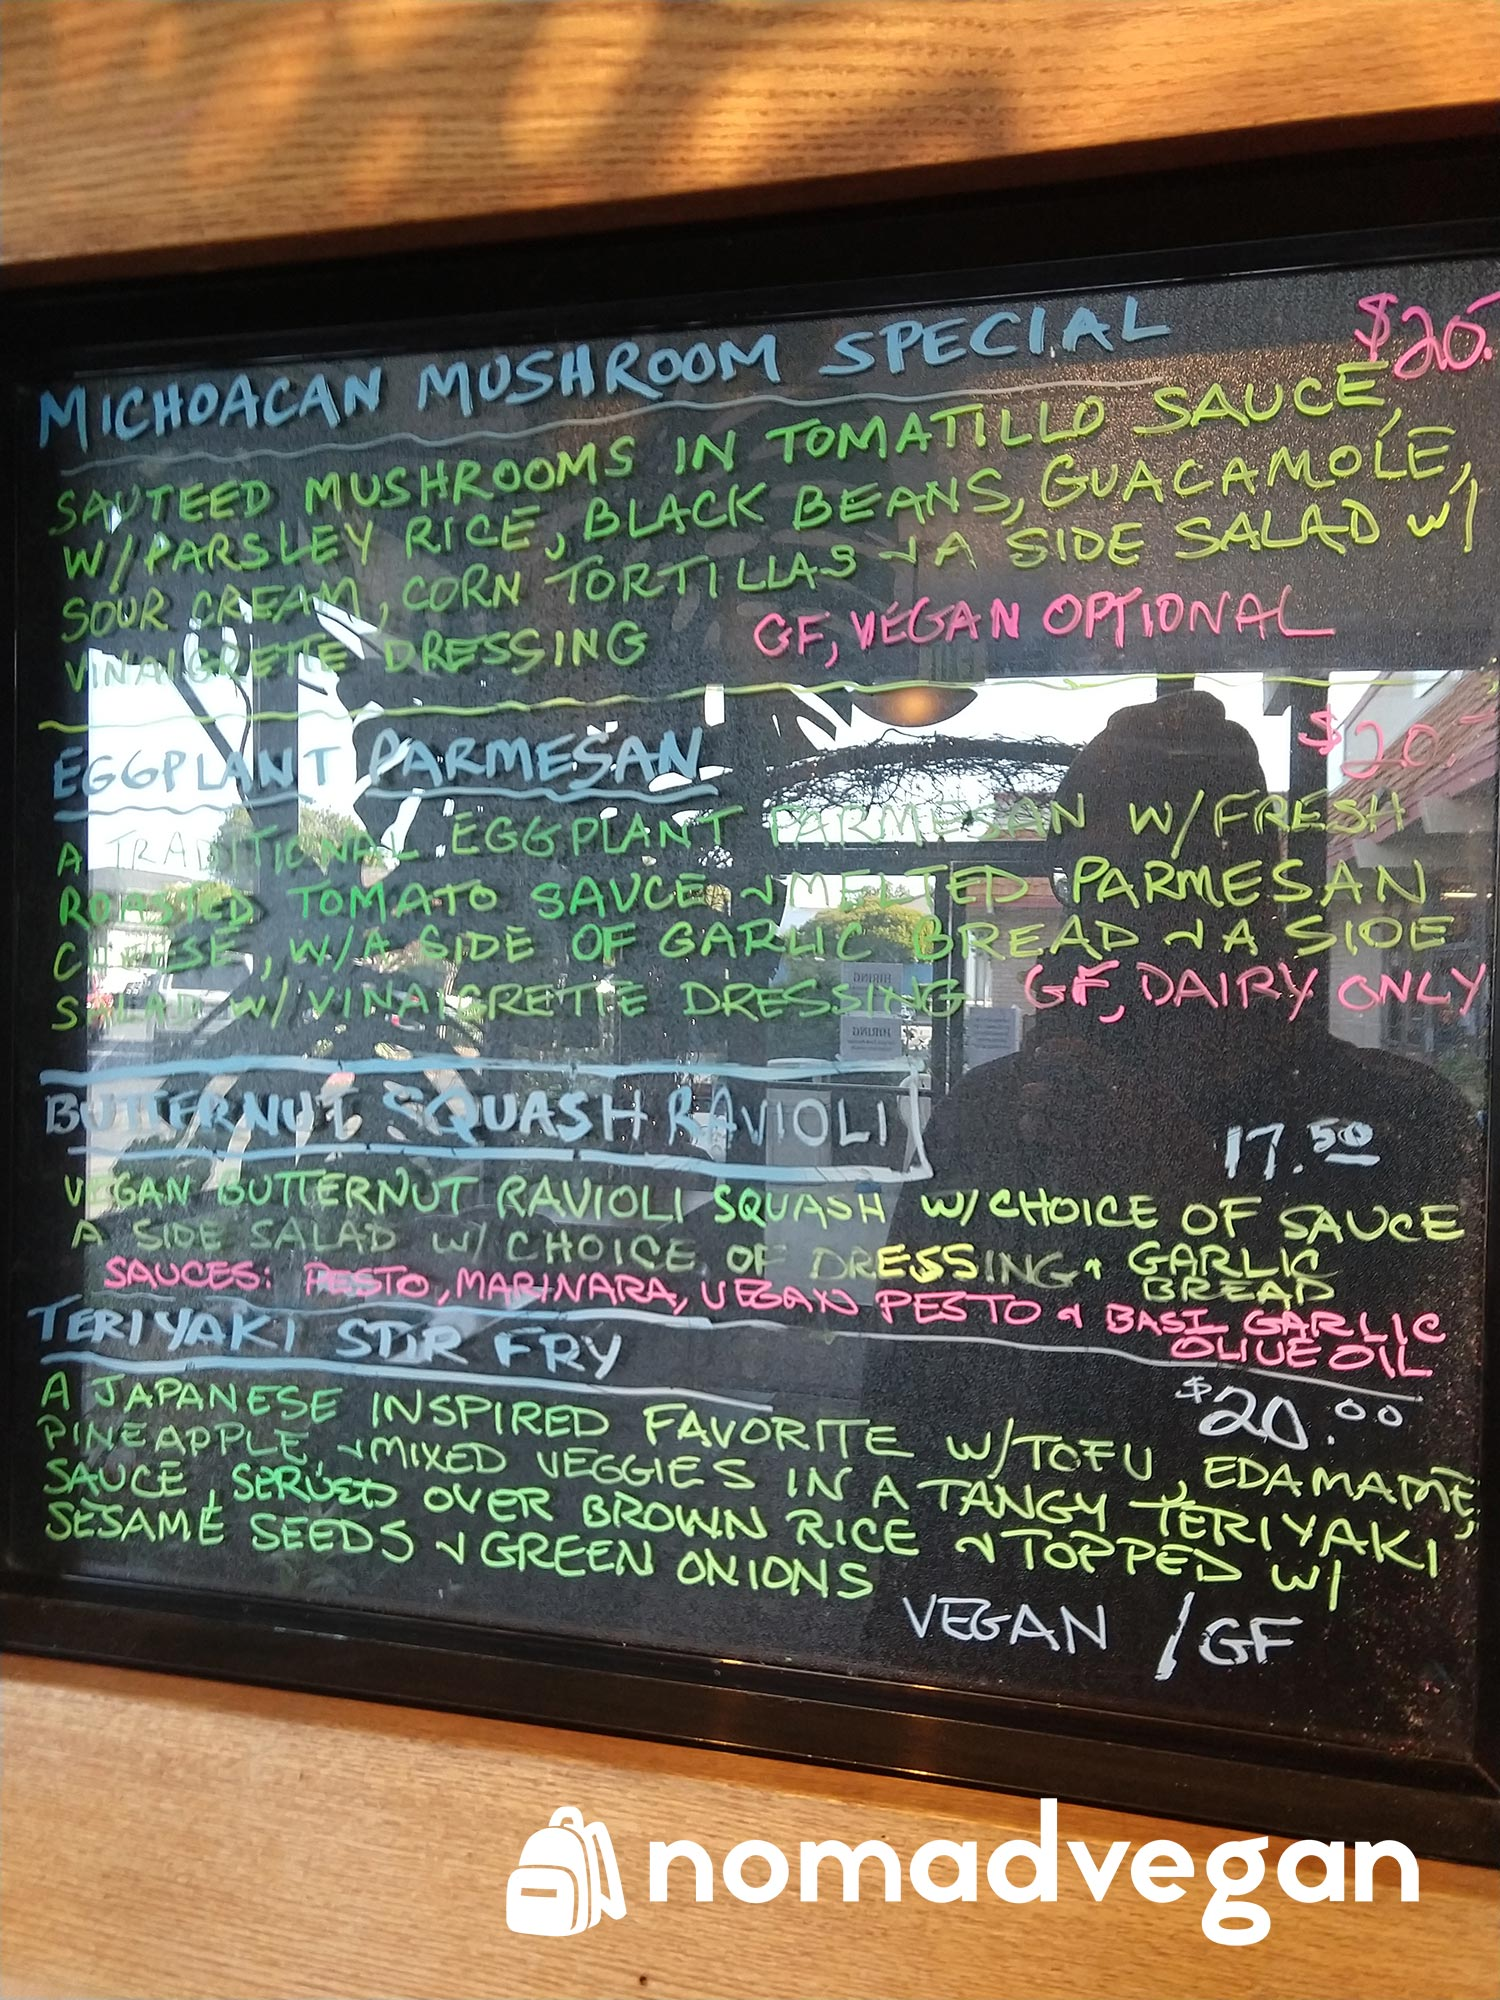 Dharmas Capitola vegan options